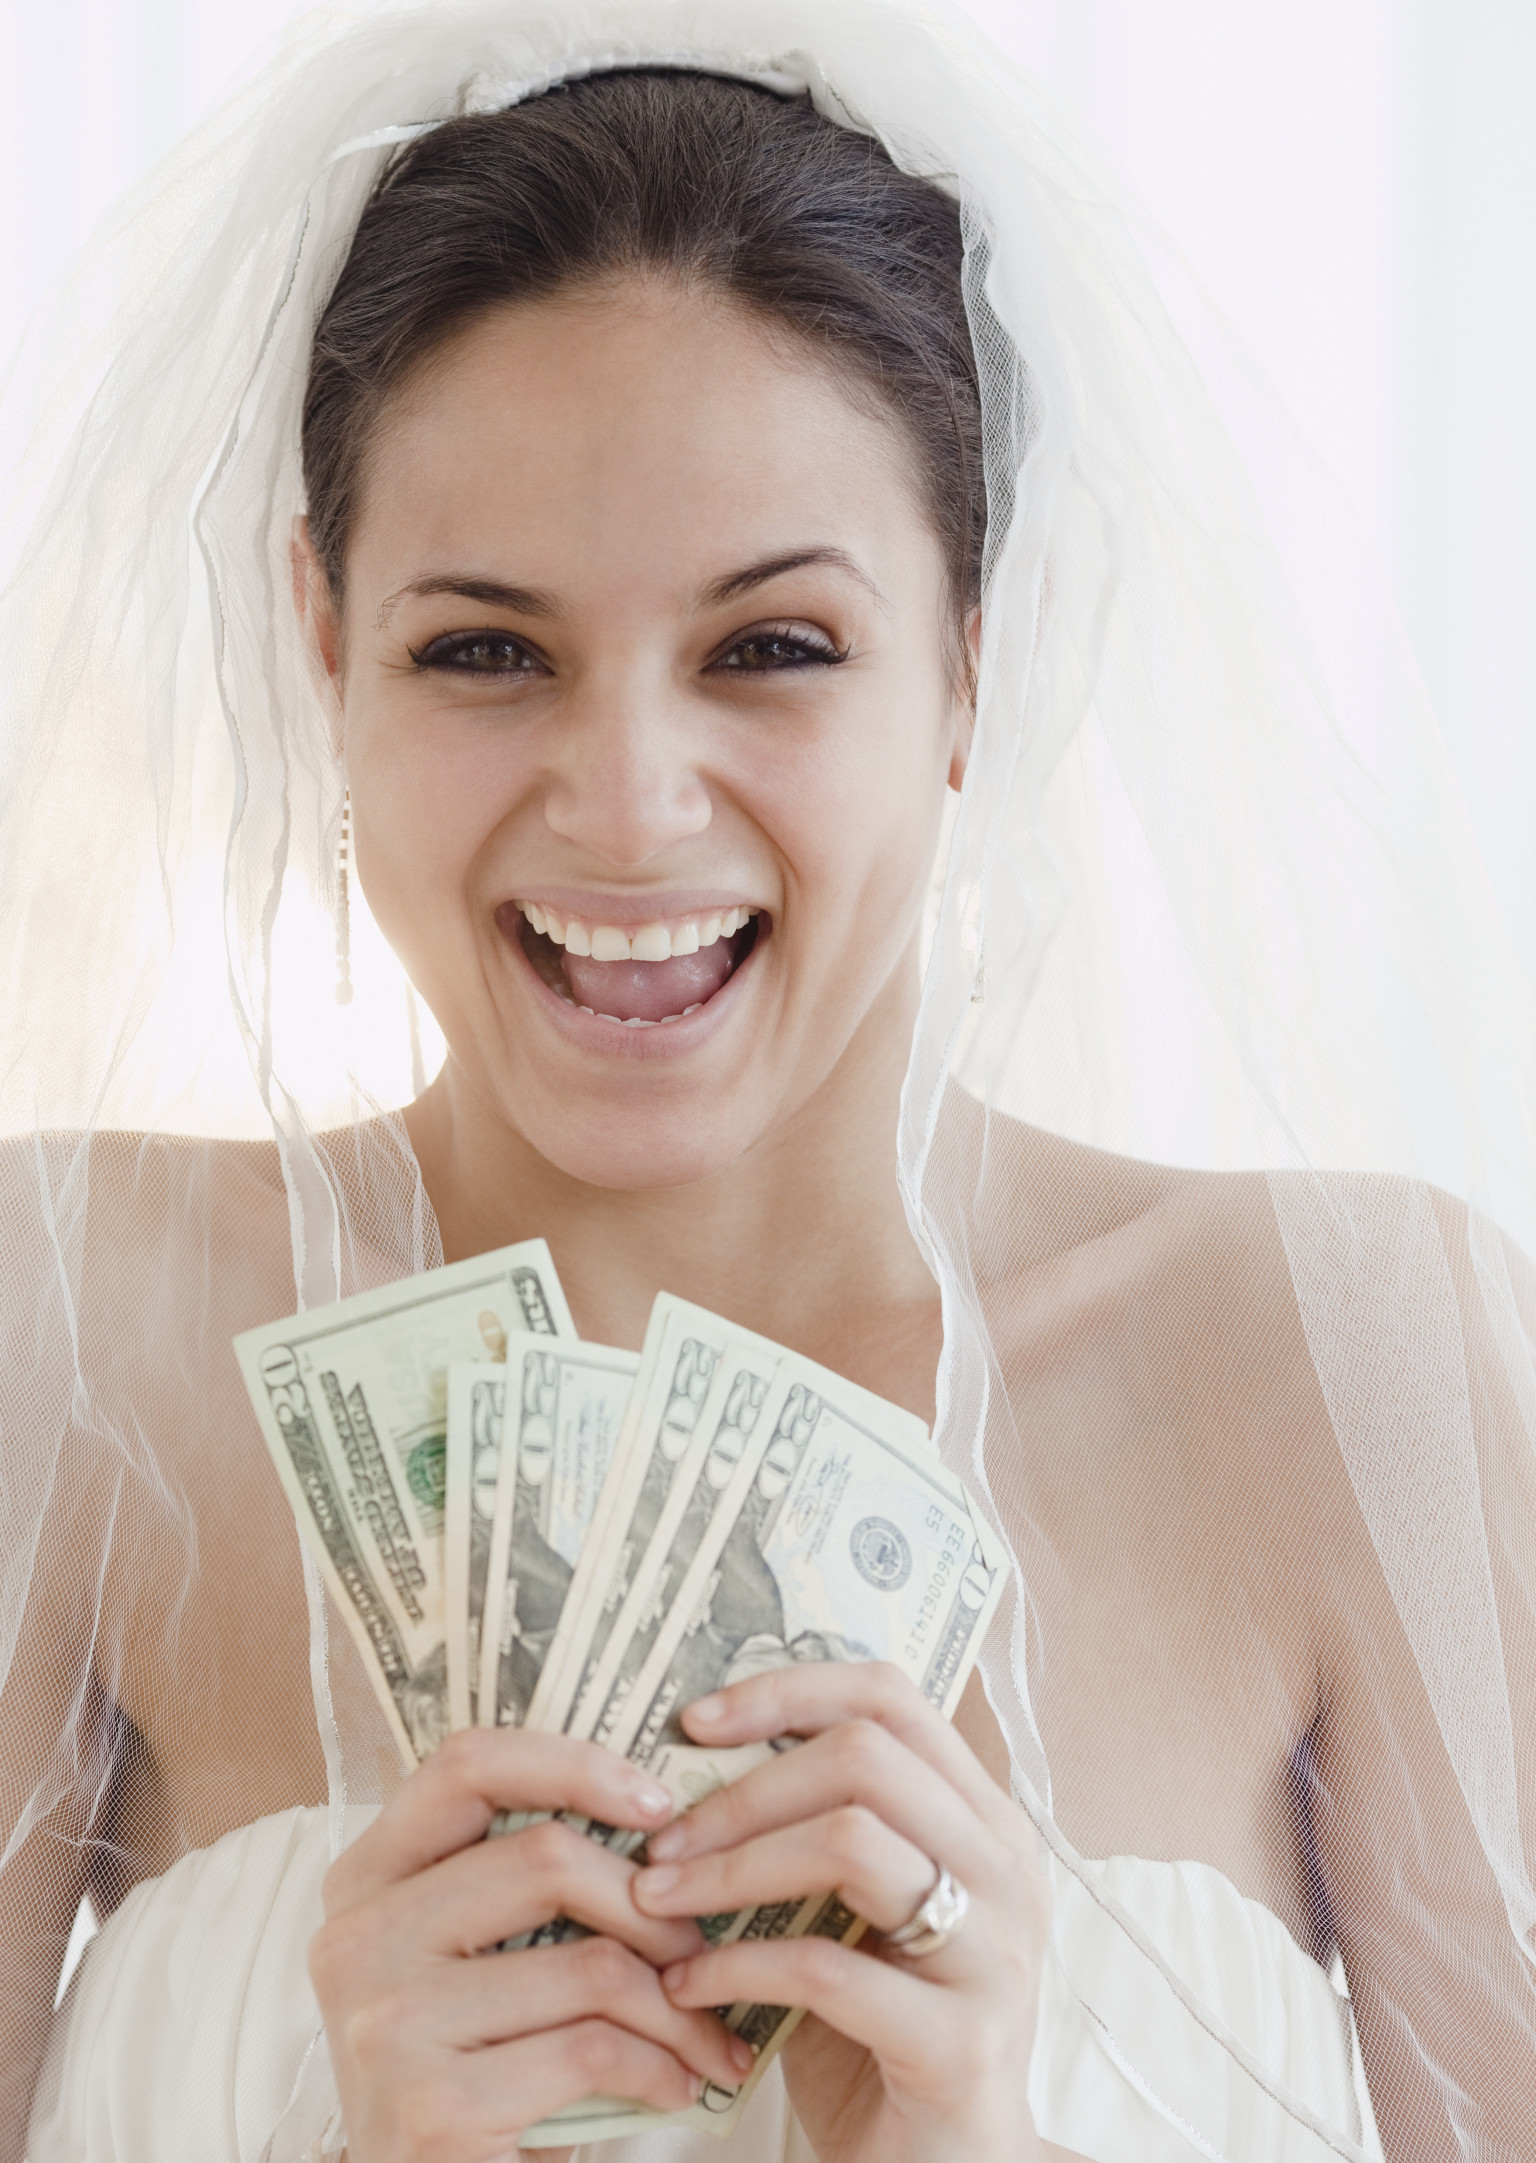 sc 1 st  HuffPost & Wedding Gift Amount Deemed Insufficient By Bad-Mannered Bride | HuffPost